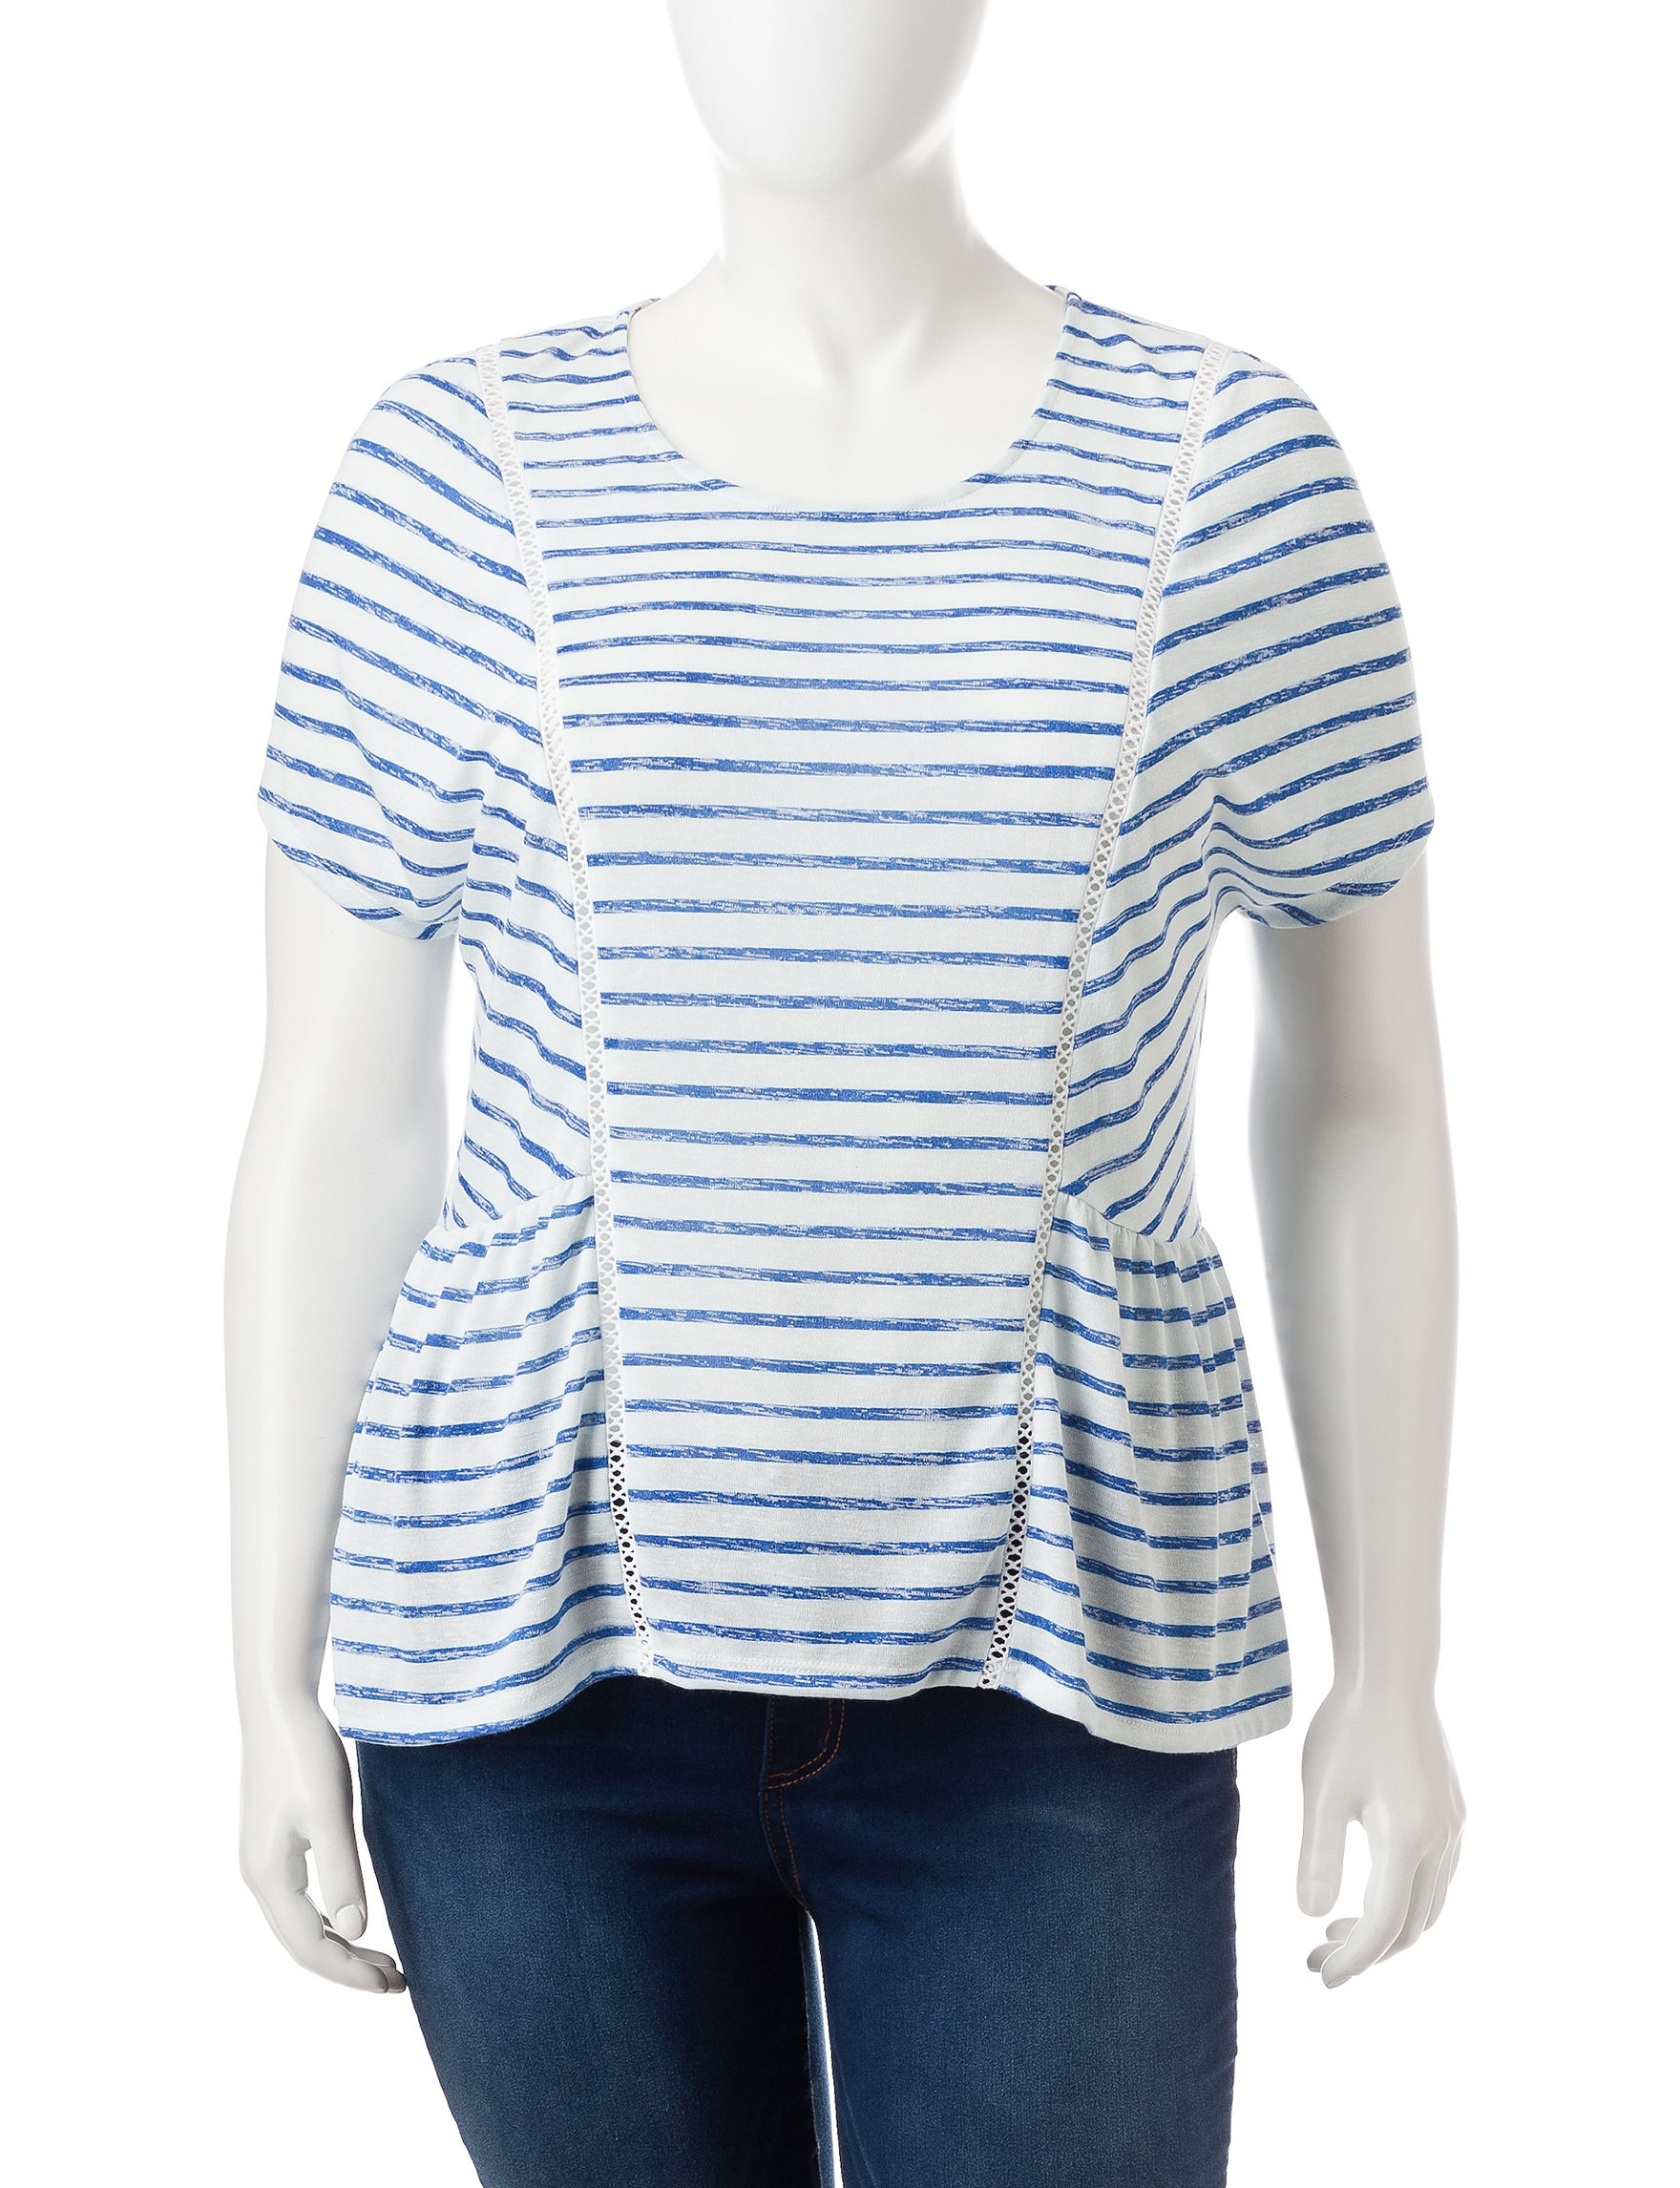 Hannah Medium Blue Shirts & Blouses Tees & Tanks